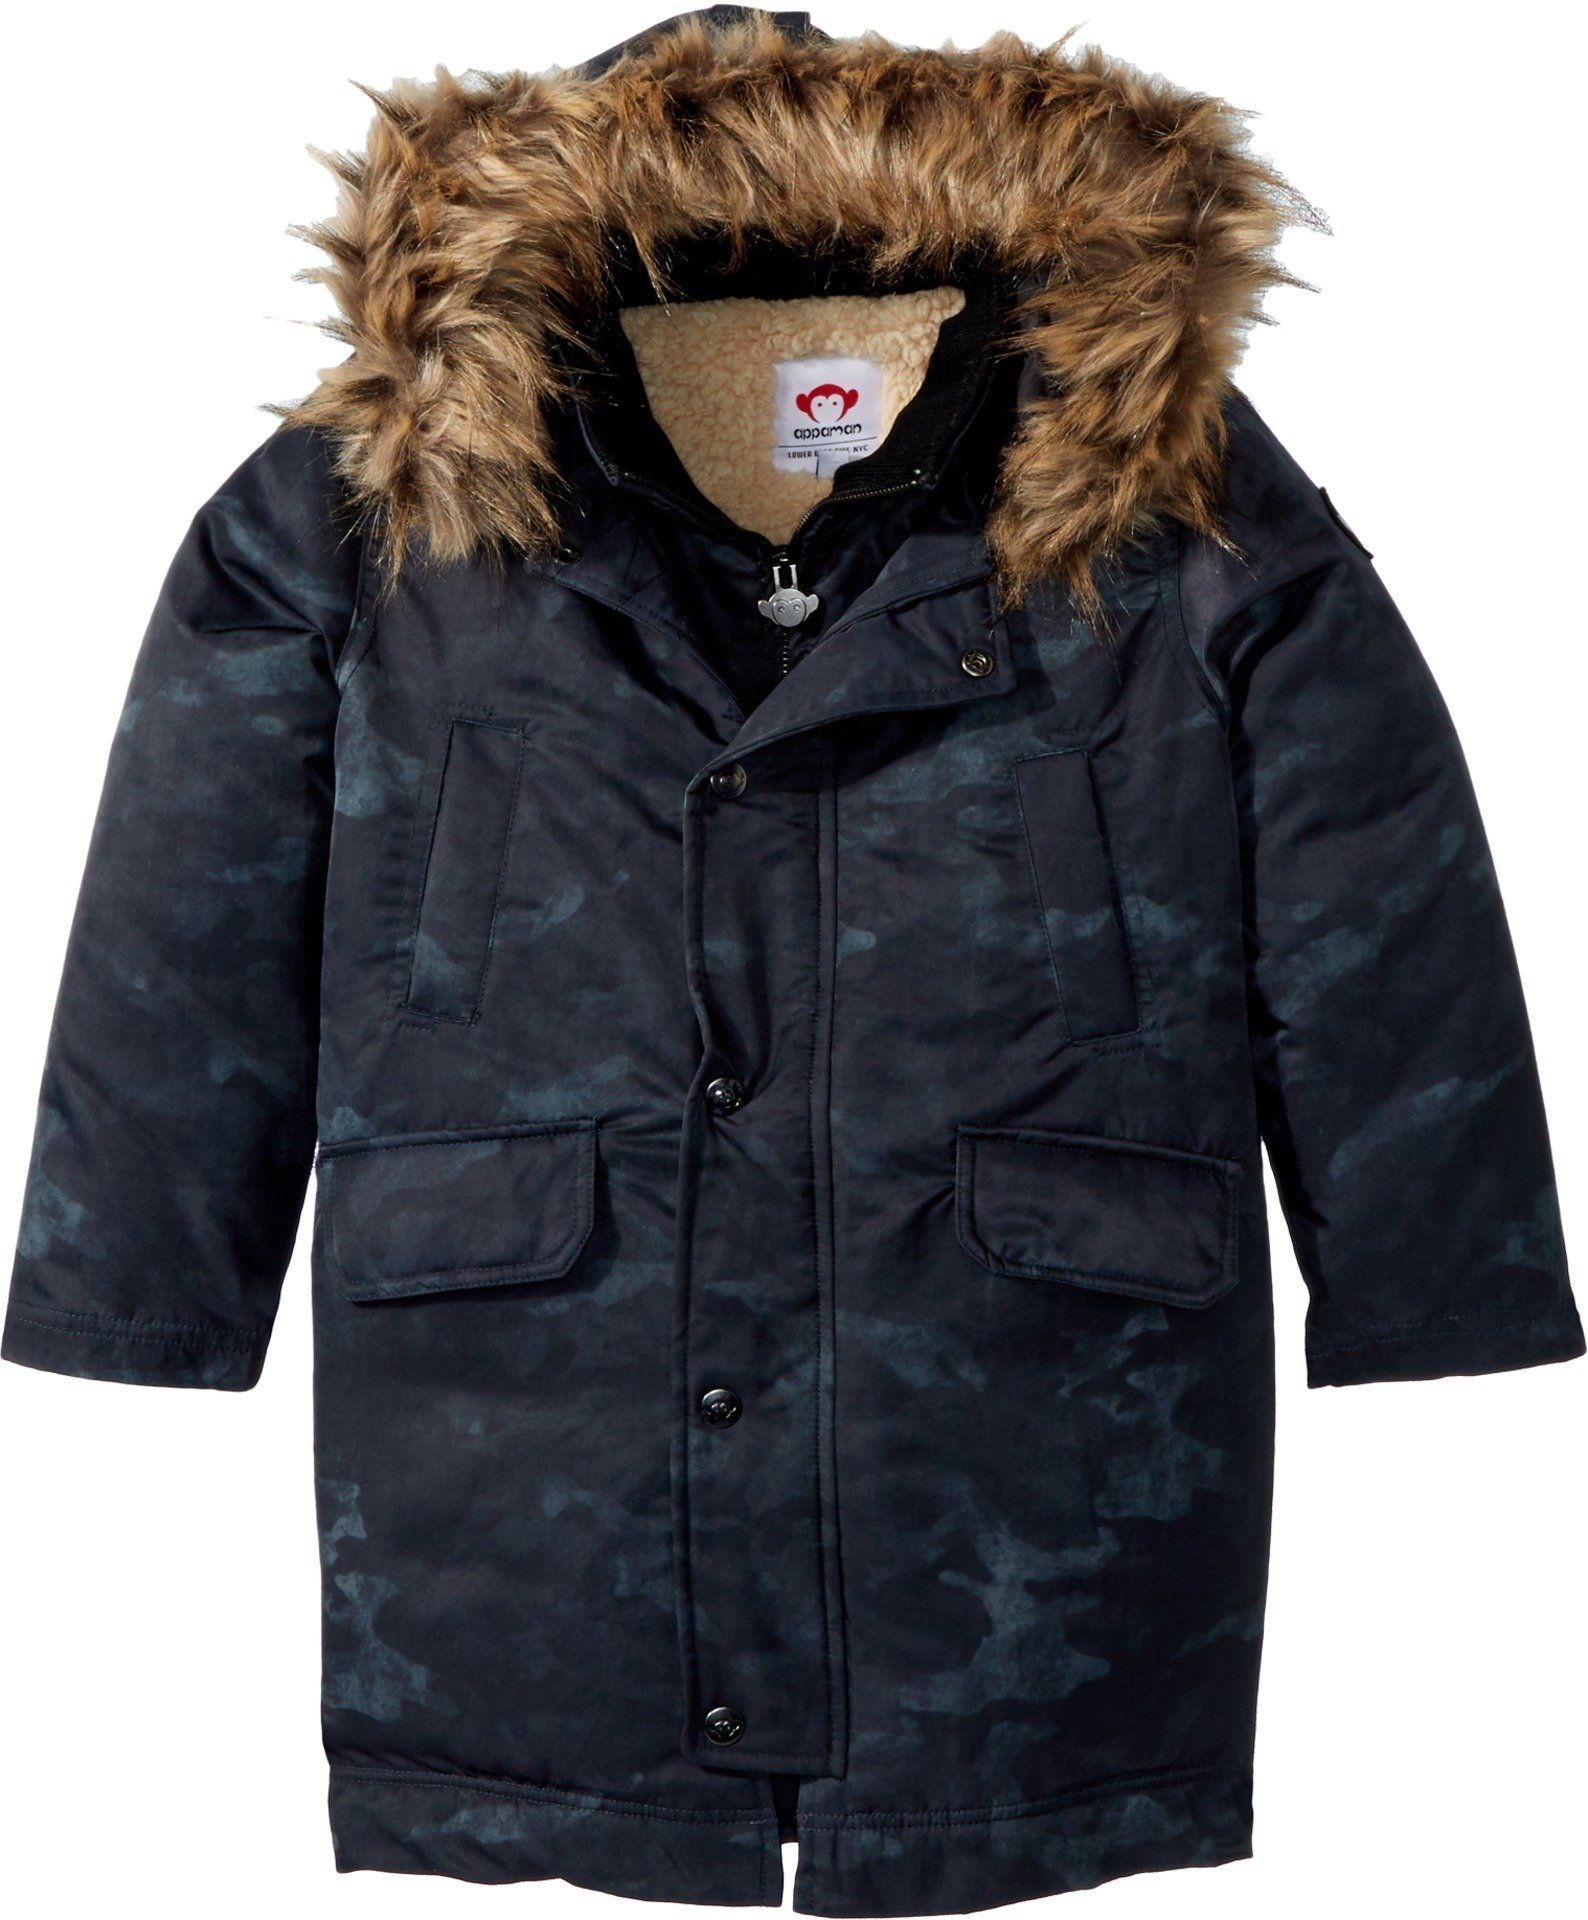 9147d98b2 Appaman Kids Baby Boy s Pratt Down Parka (Toddler Little Kids Big ...